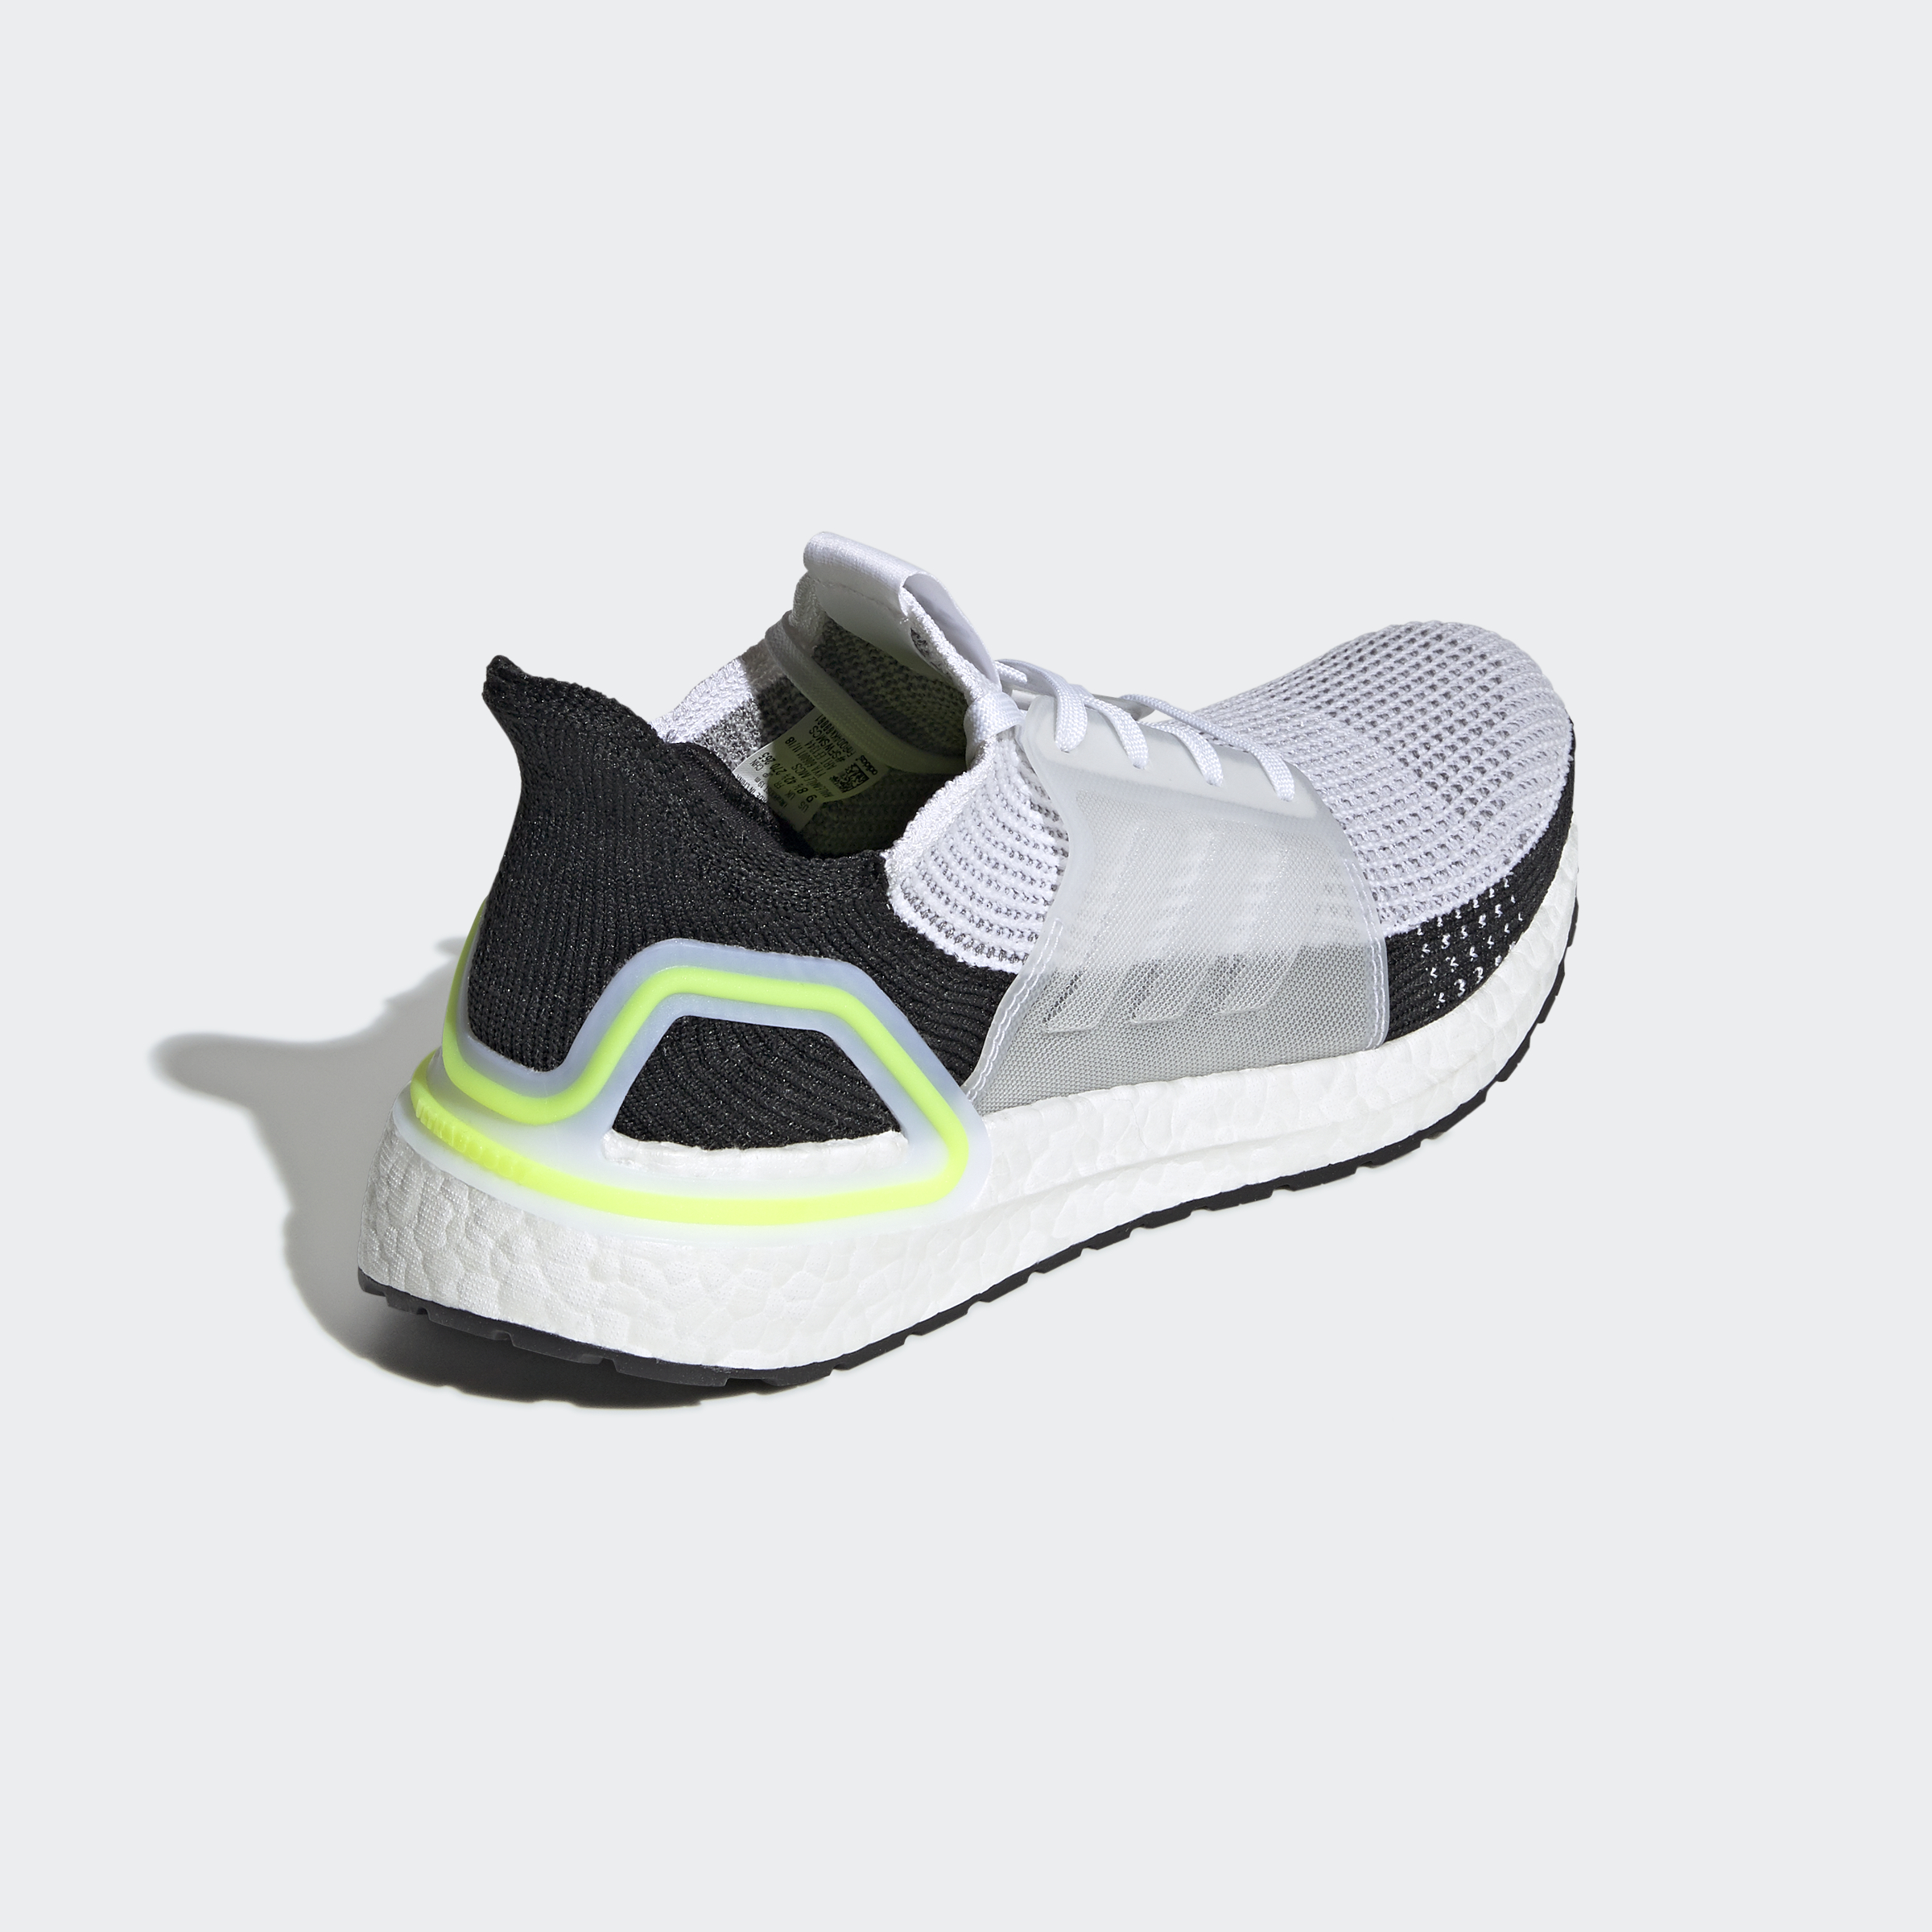 adidas-Ultraboost-19-Shoes-Athletic-amp-Sneakers thumbnail 41